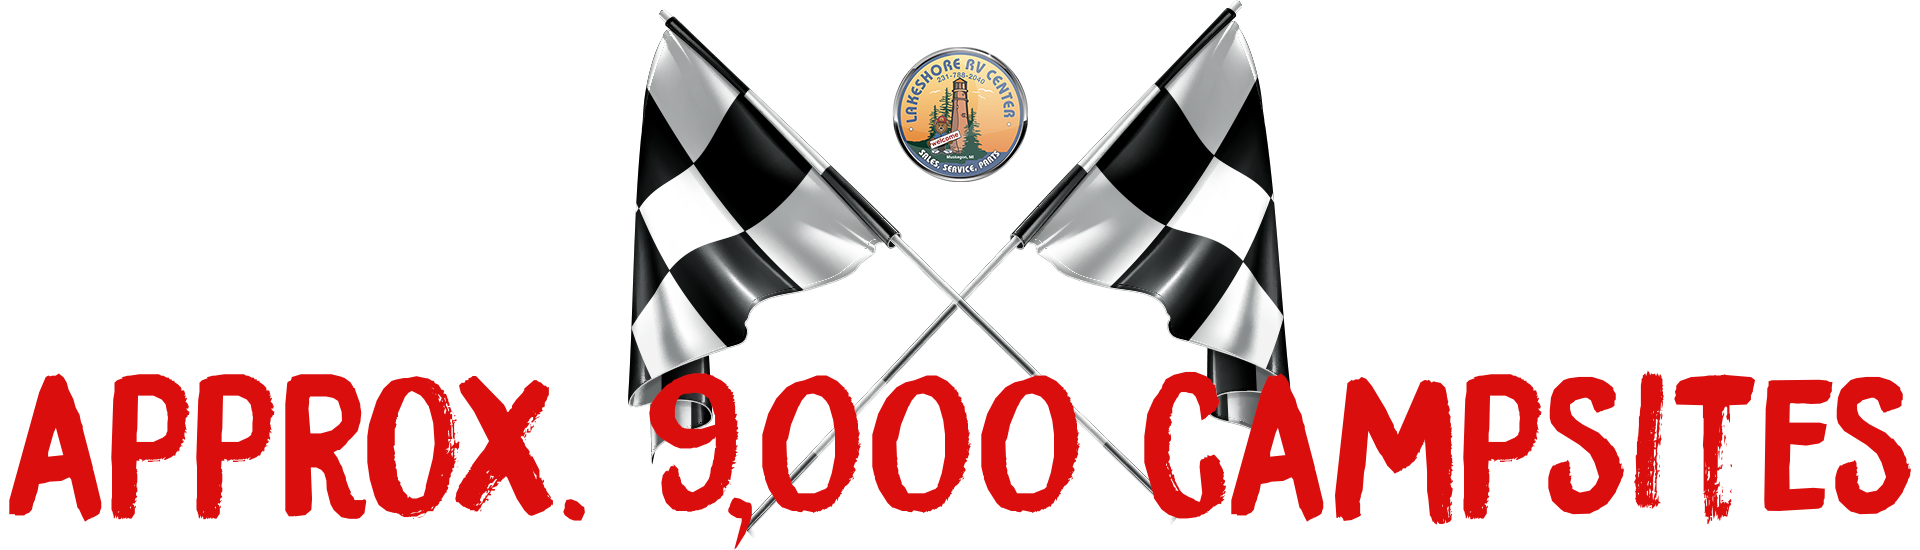 approximately 9000 campsites